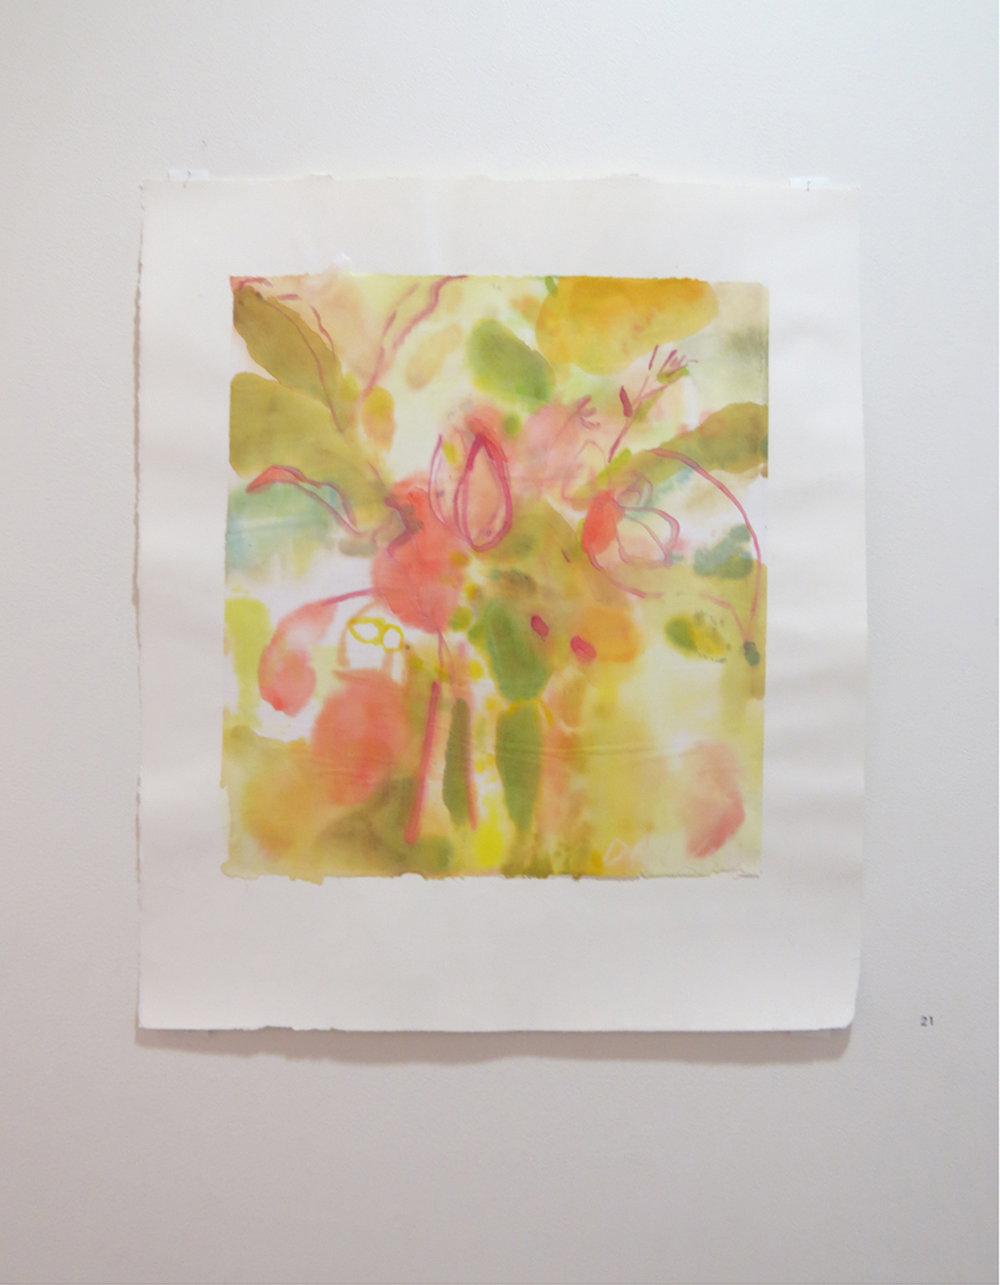 21. Jo Darvall, 'Floating Water Work 6', 2015, Watercolour on rice paper, 67 x 58cm, $1,800